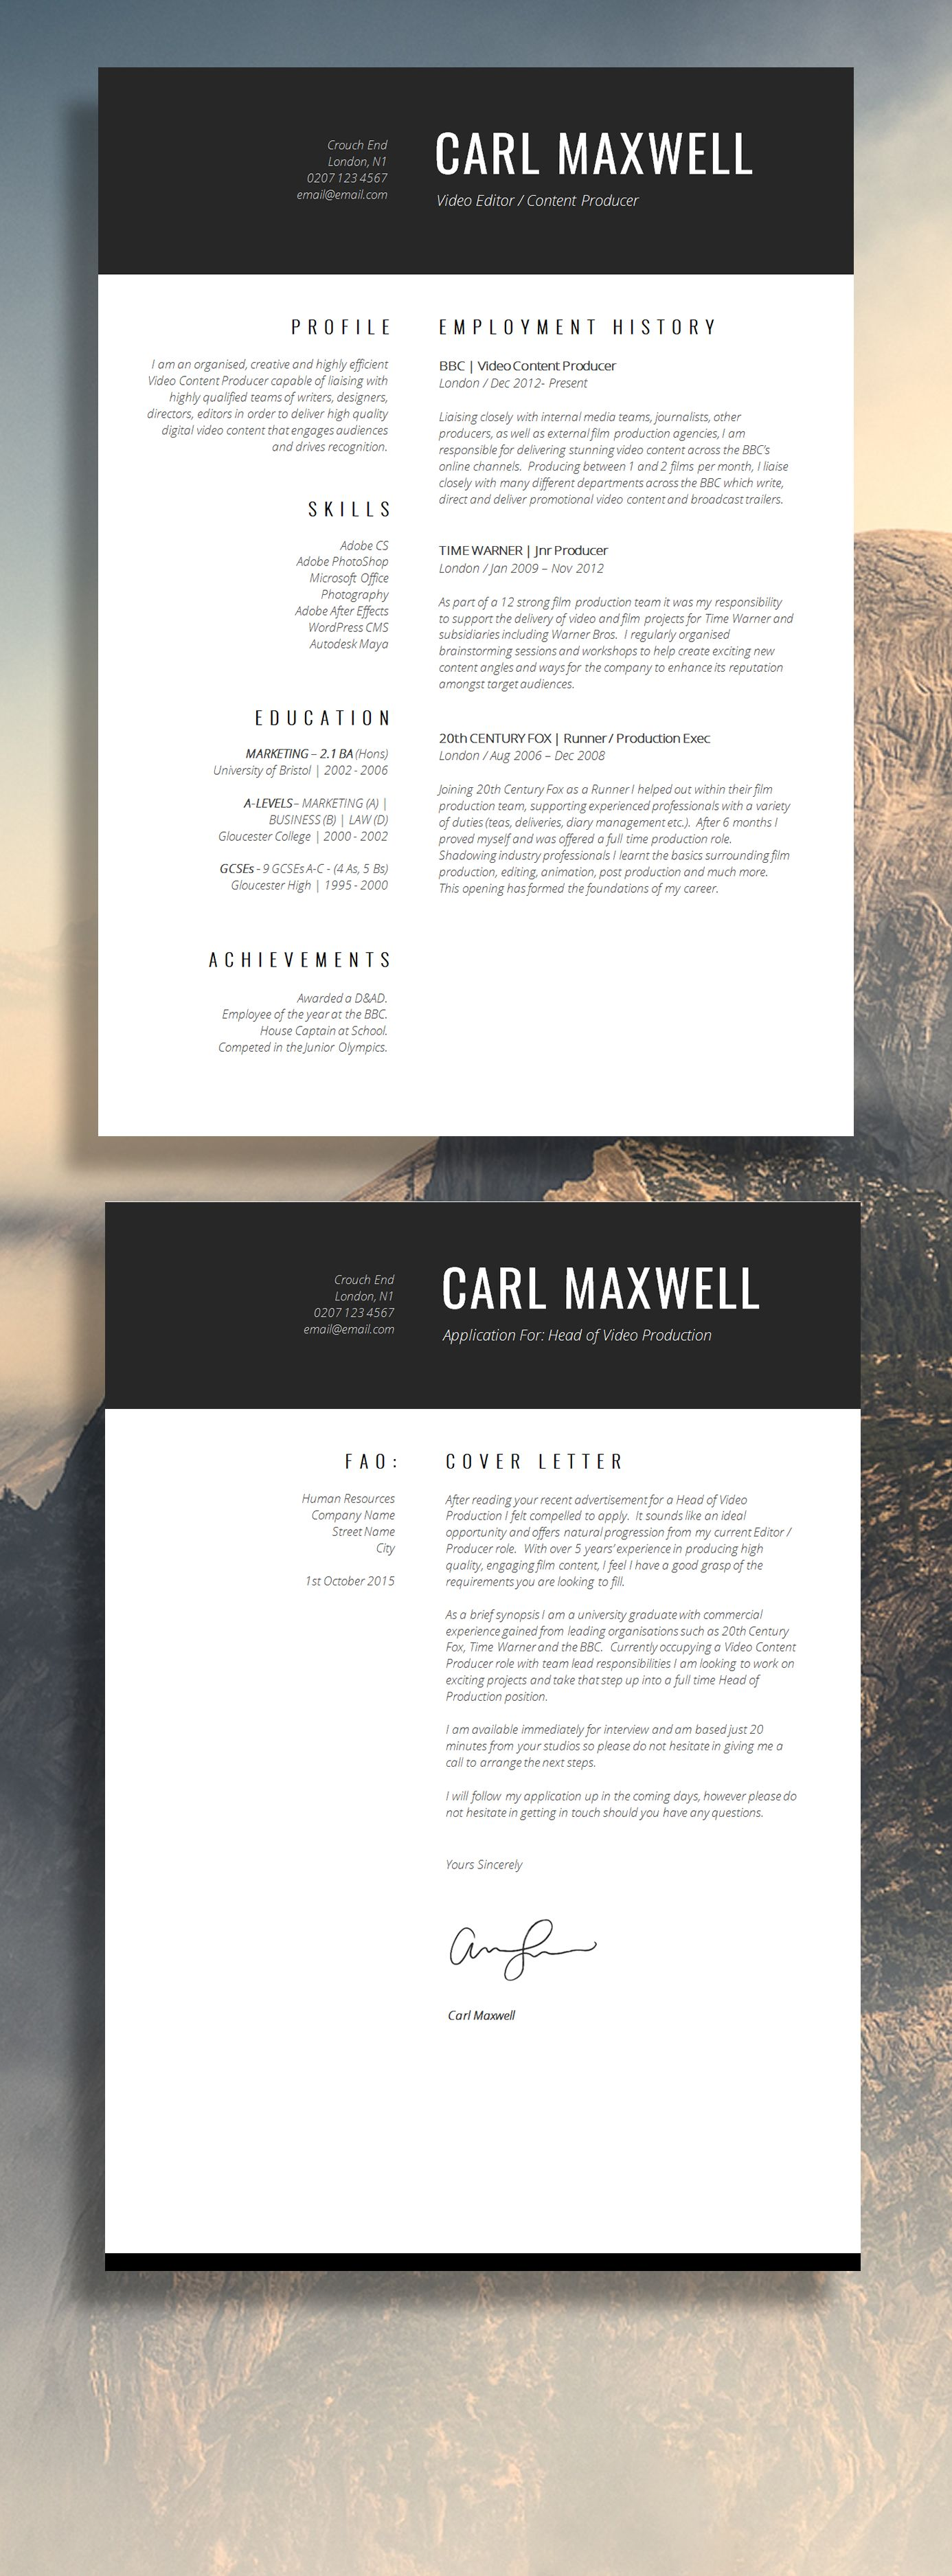 Professional Resume Template  Cv Template  Resume Advice  Cover